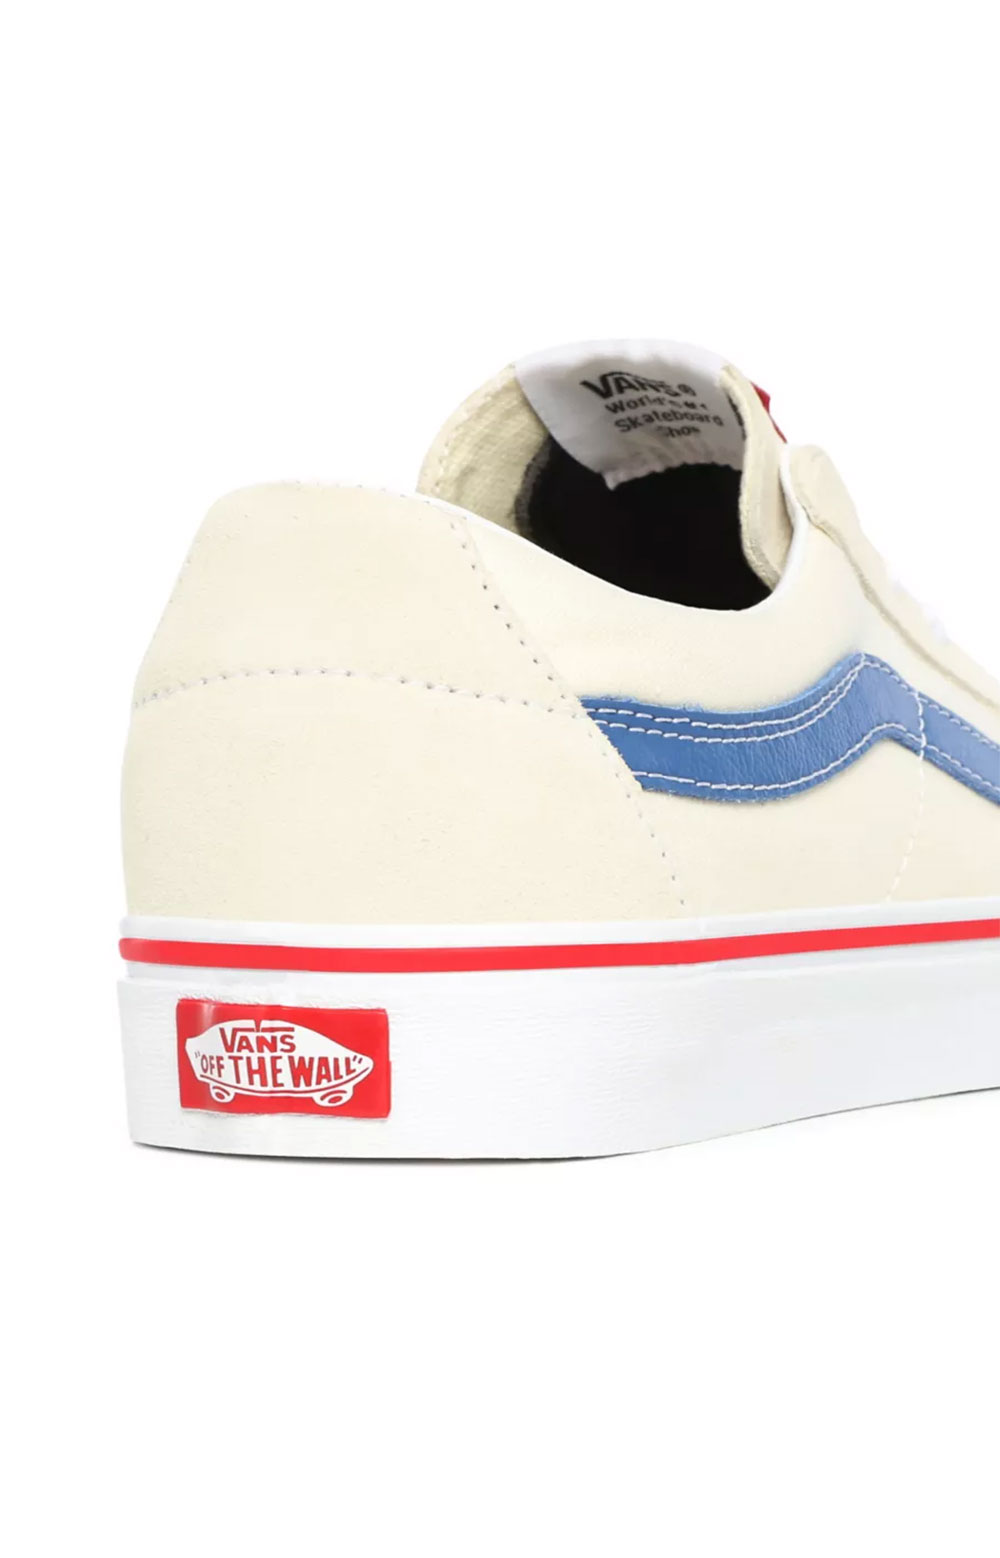 (UUK24I) Sk8-Low Shoes - Classic White/Navy 6